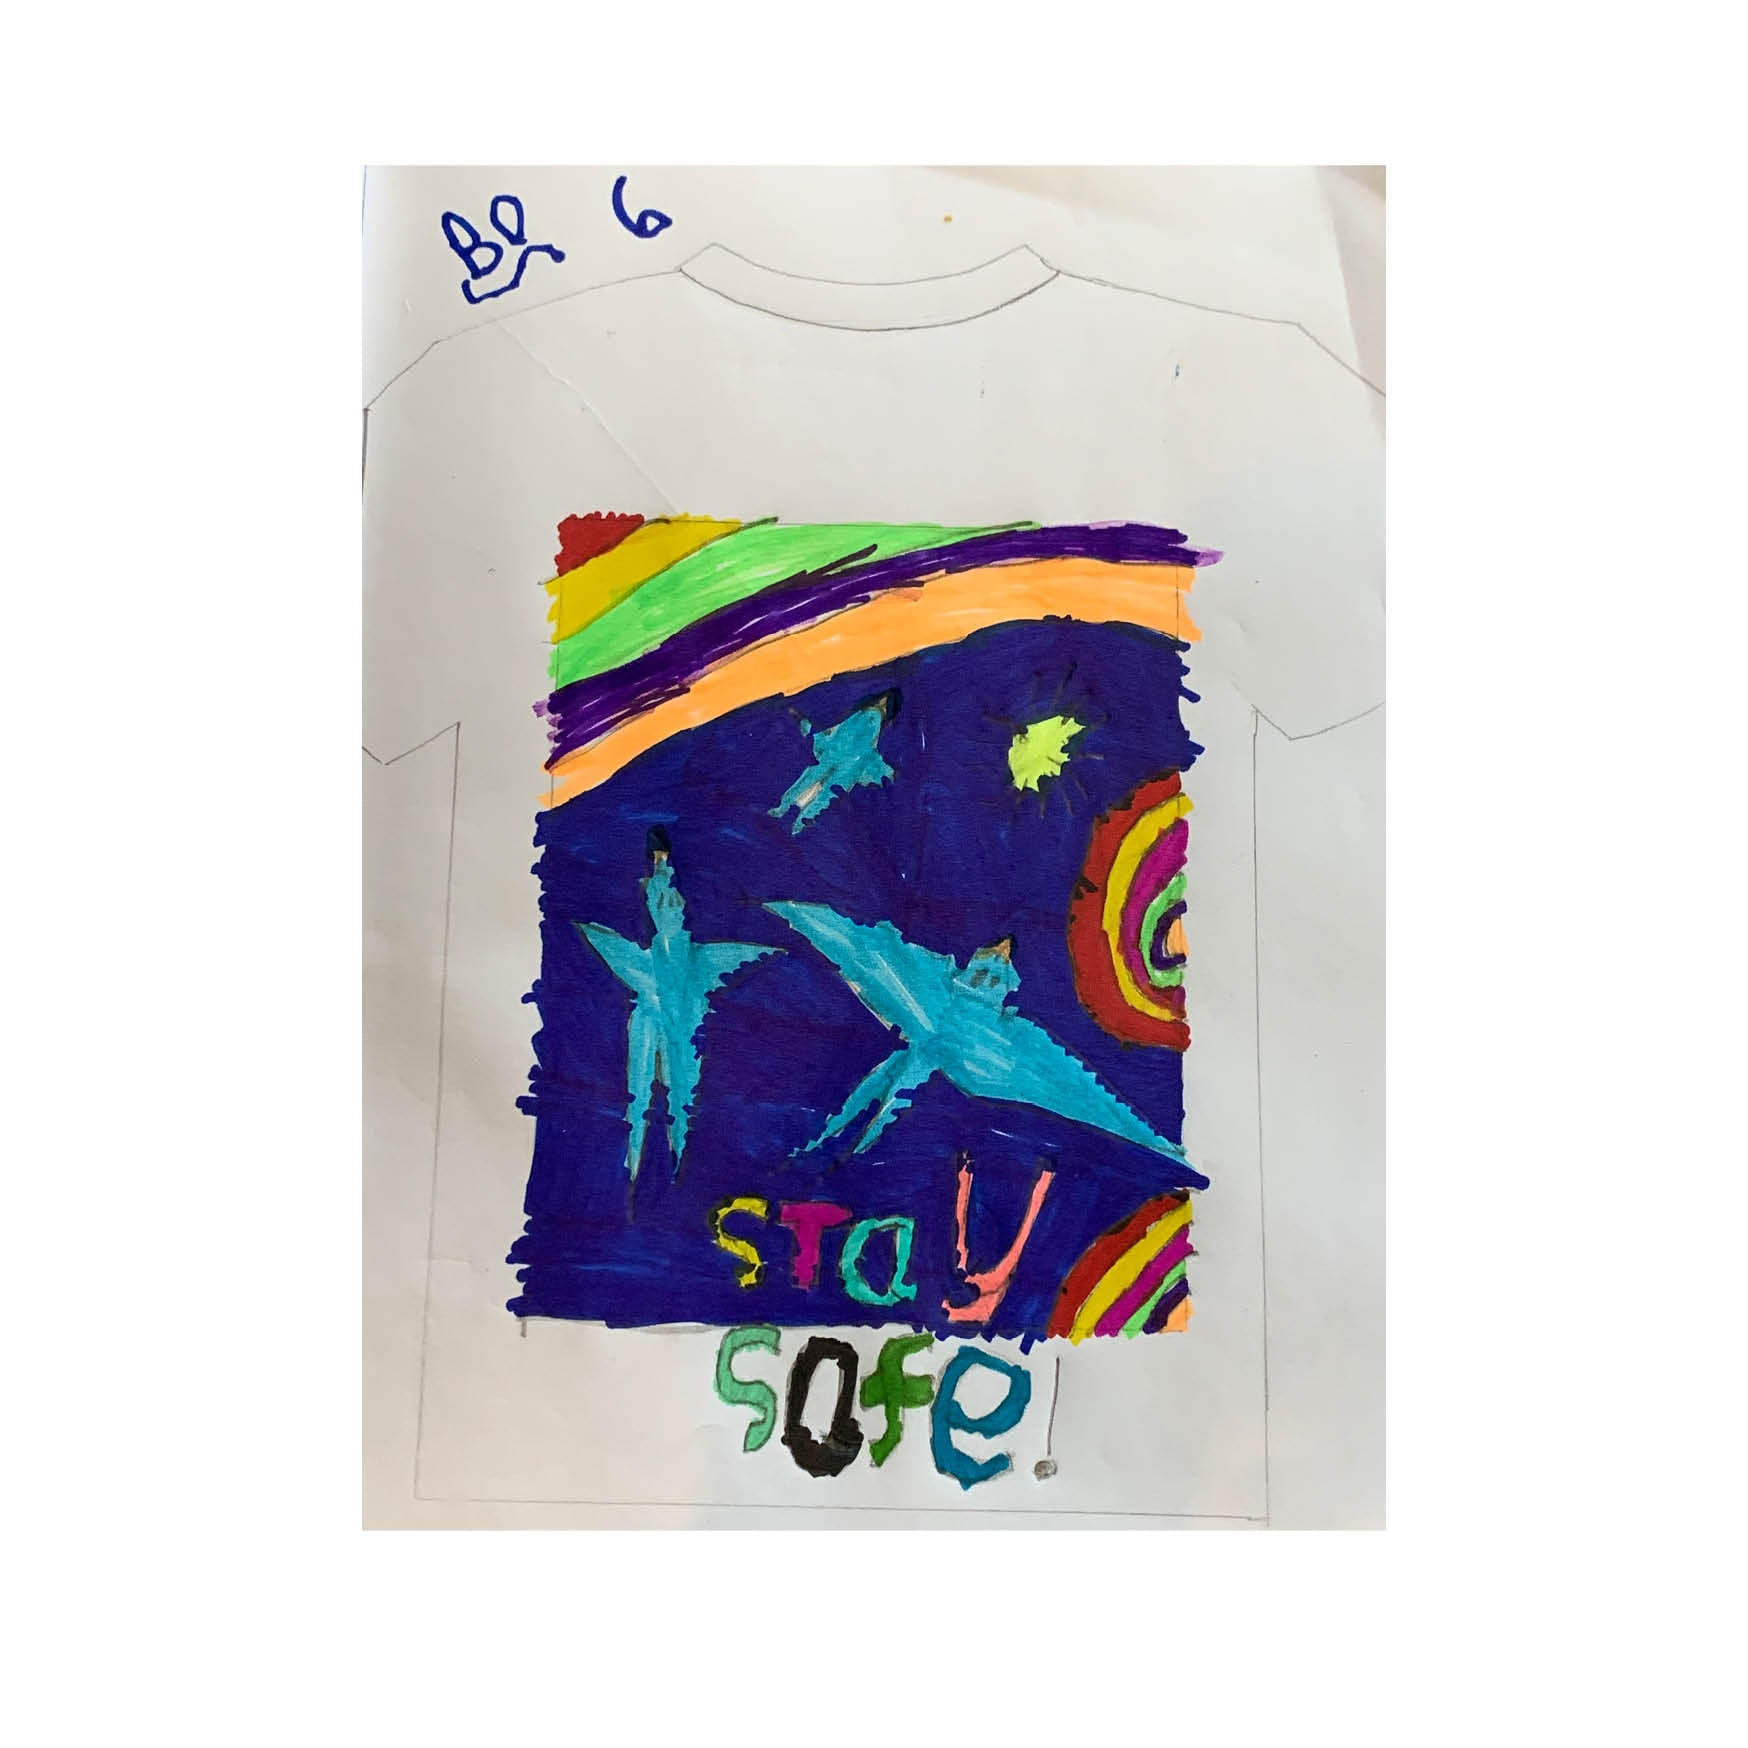 Bo Reef aged 6  - #FinisterreForNHS t-shirt design competition [Kids category]